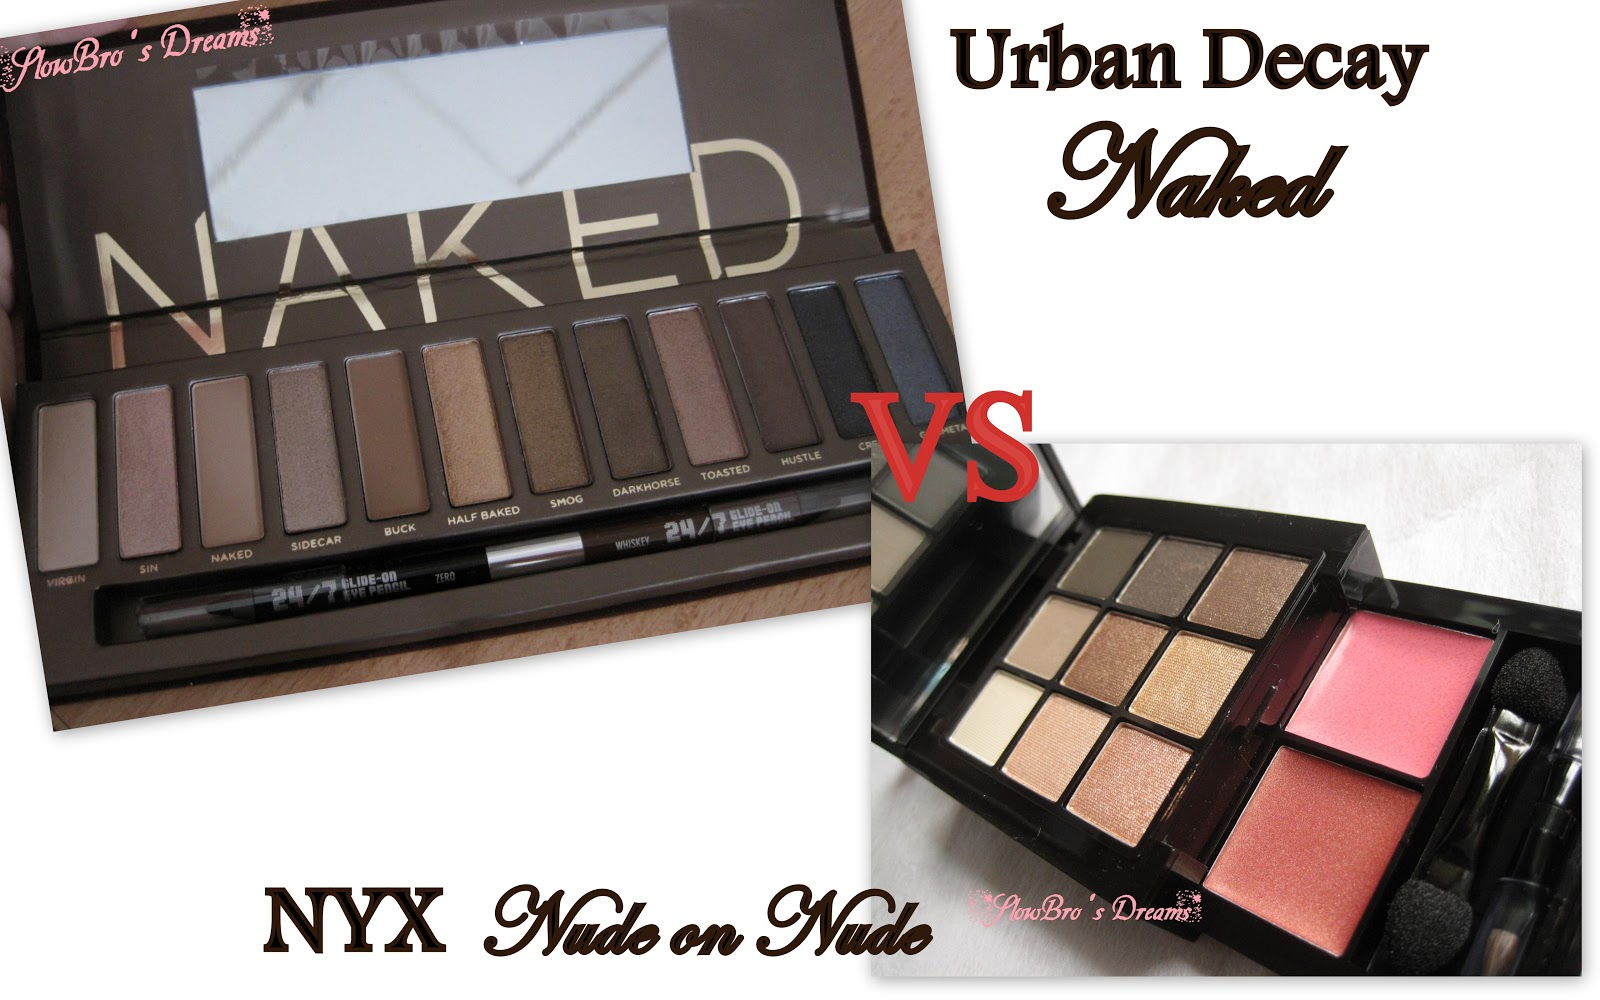 Urban Decay Naked Palette vs. NYX Nude on Nude Natural